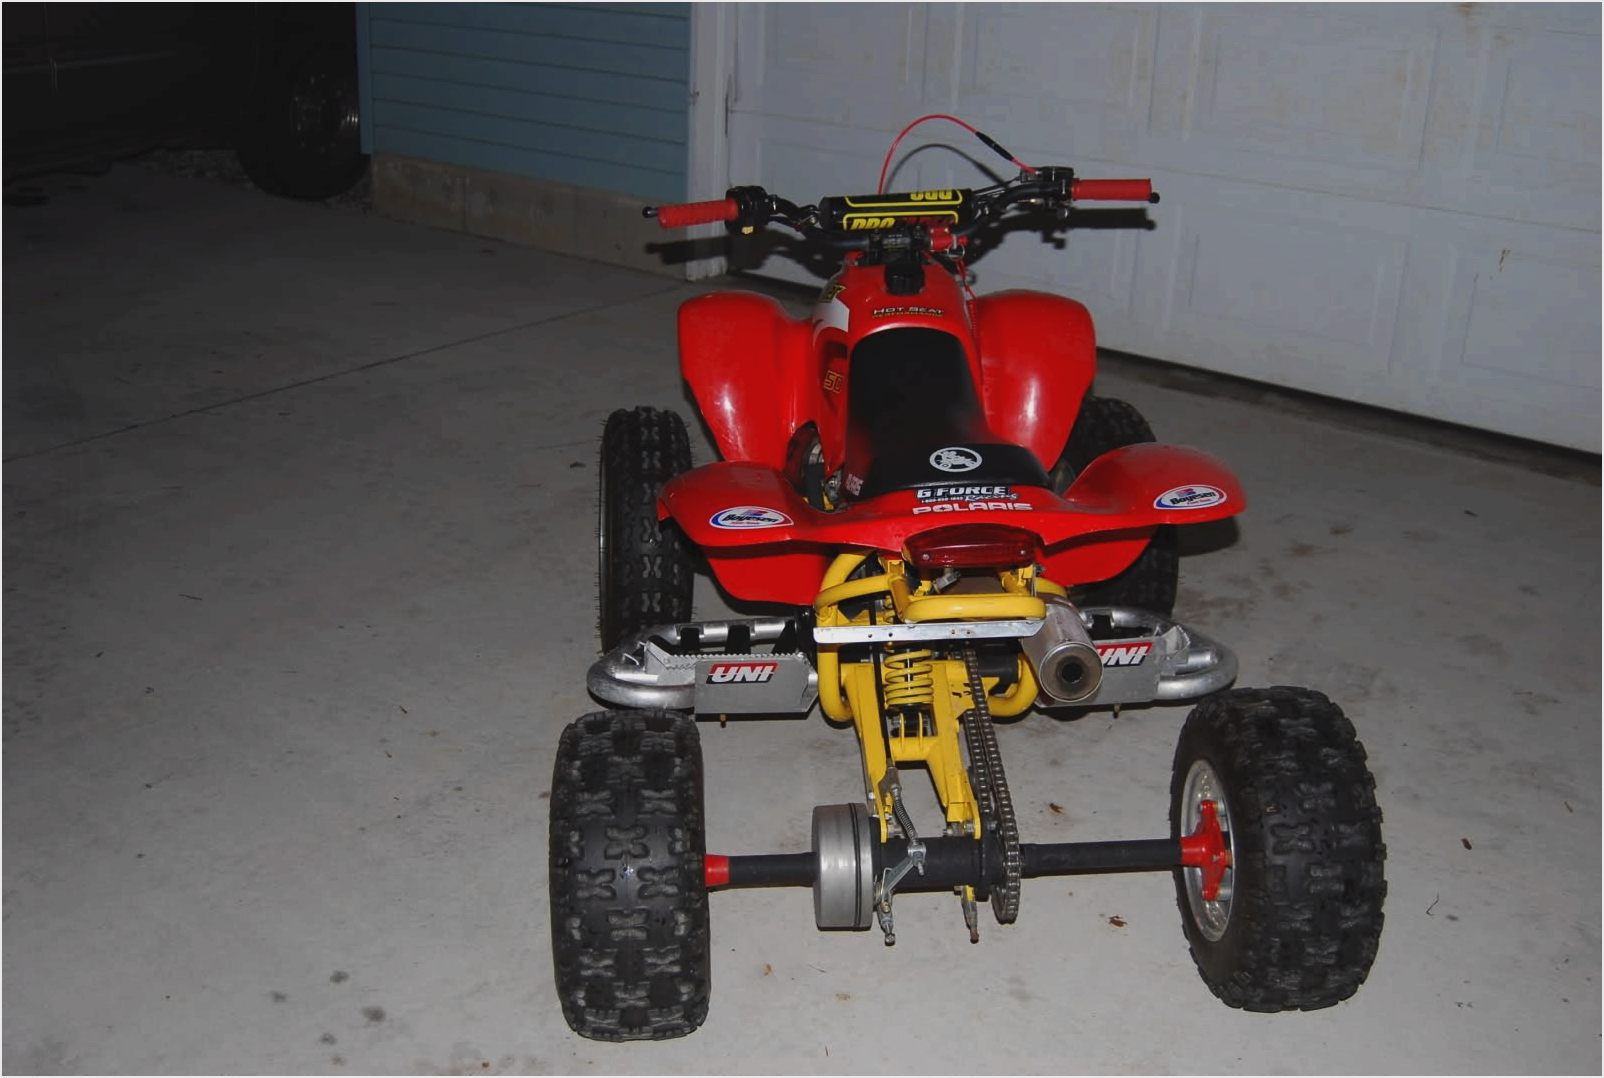 Polaris Scrambler 400 1999 images #120838